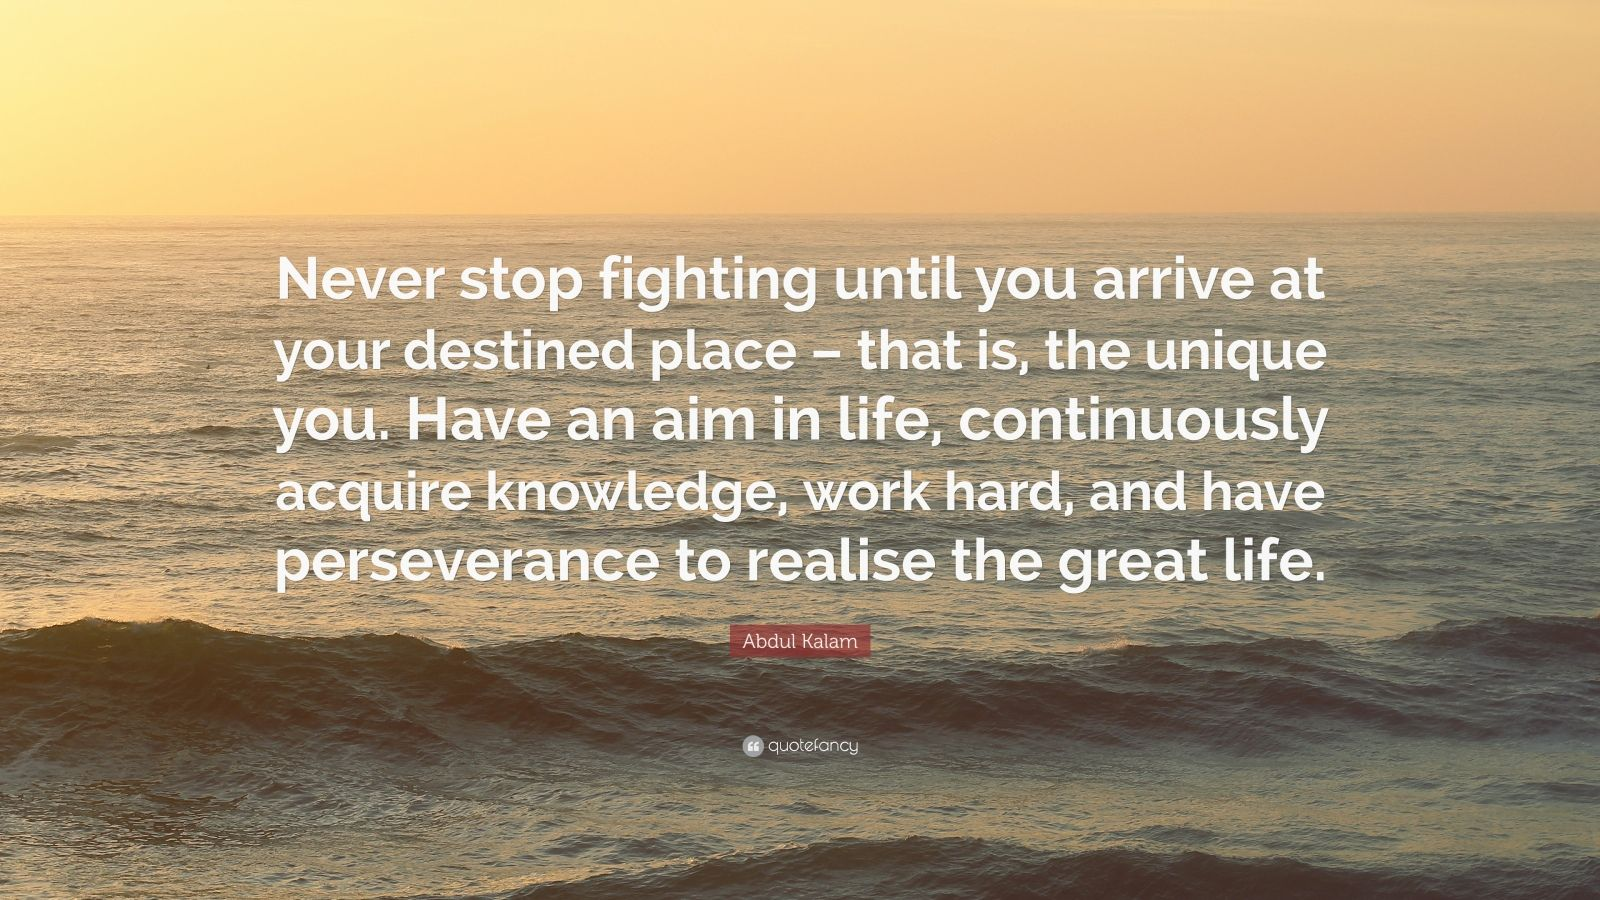 """Abdul Kalam Quote: """"Never stop fighting until you arrive at your destined place – that is, the unique you. Have an aim in life, continuously acquire knowledge, work hard, and have perseverance to realise the great life."""""""